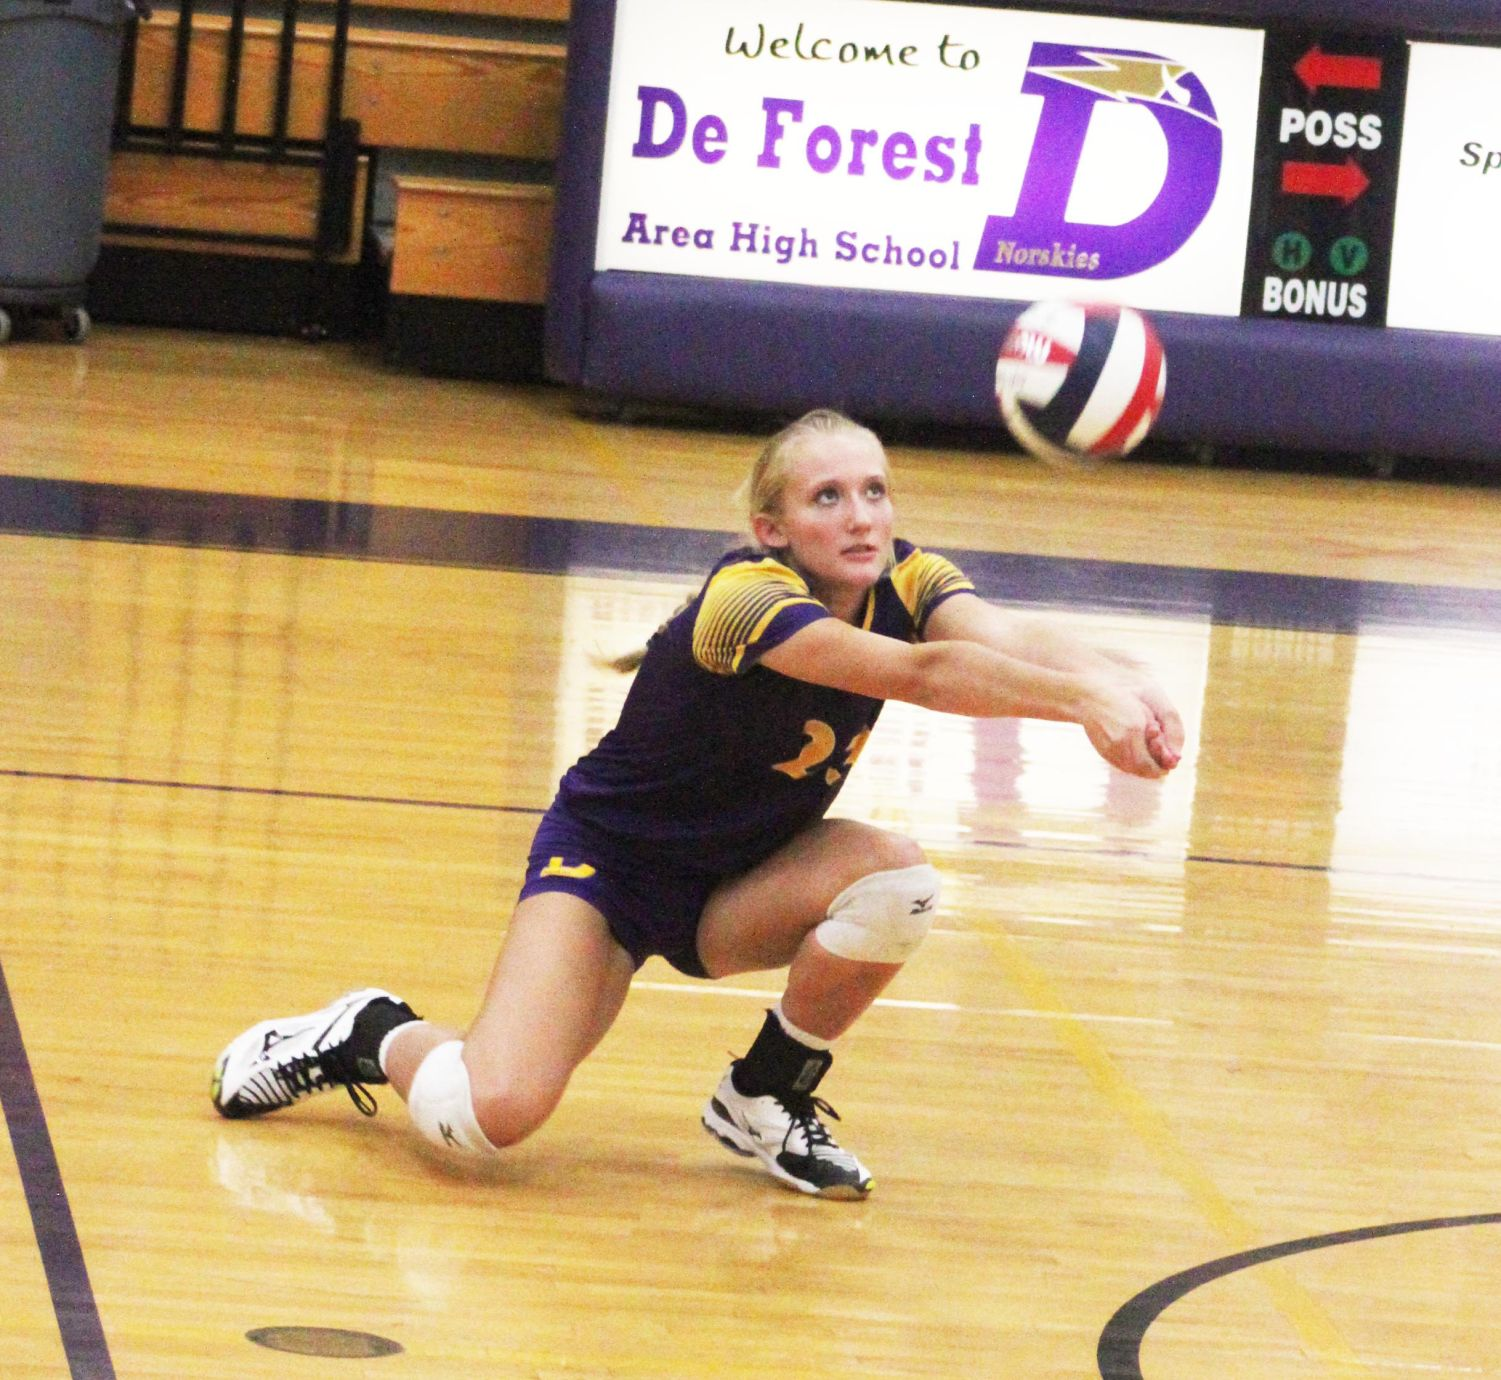 Successful week on the court | DeForest Times |